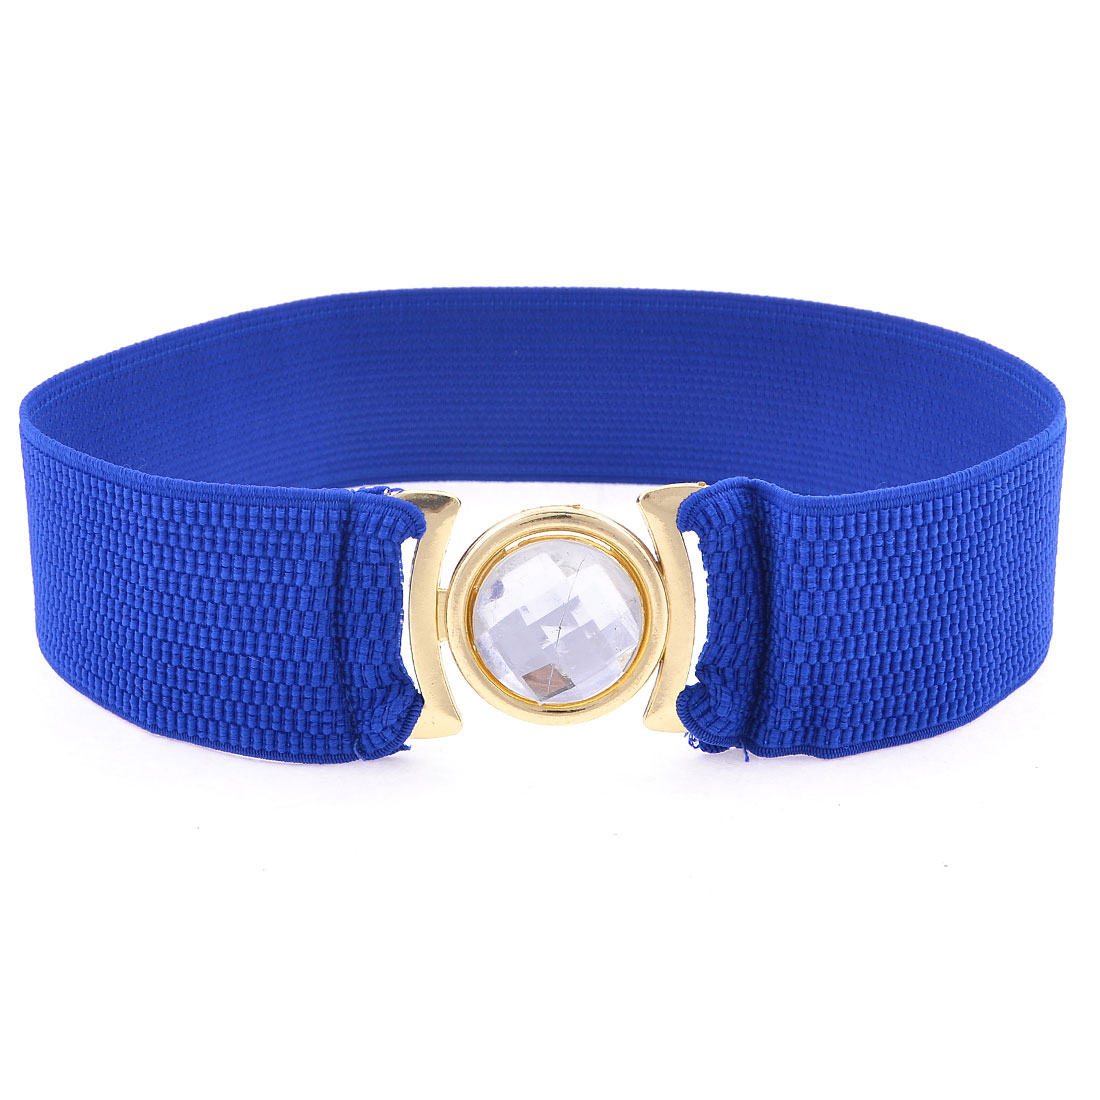 4.9cm Wide Interlock Buckle Stretch Dark Blue Corset Belt Waist Band for Ladies